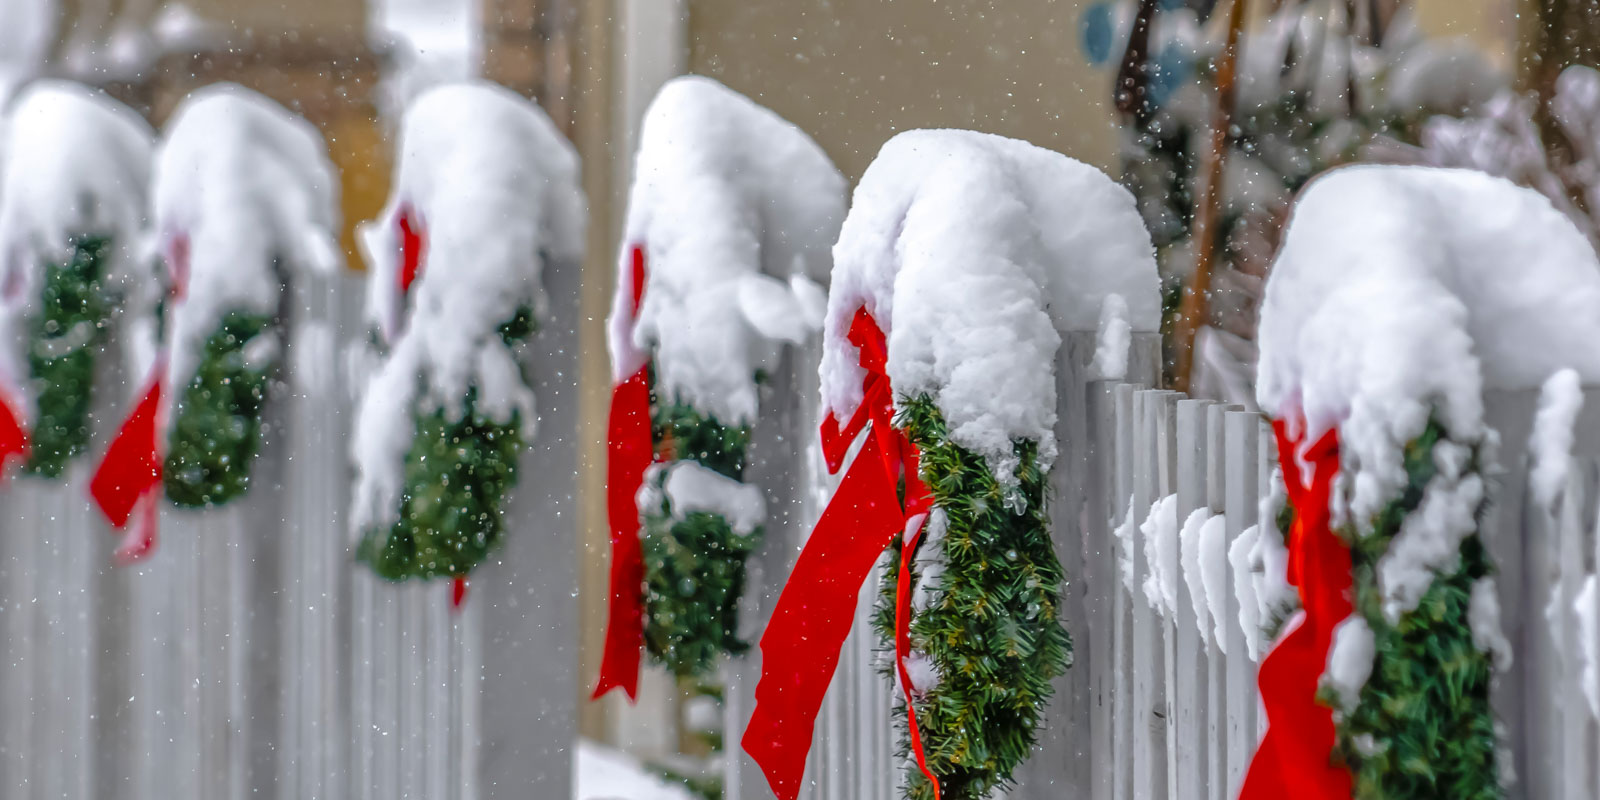 Christmas wreaths on white wooden fence in winter2.jpg